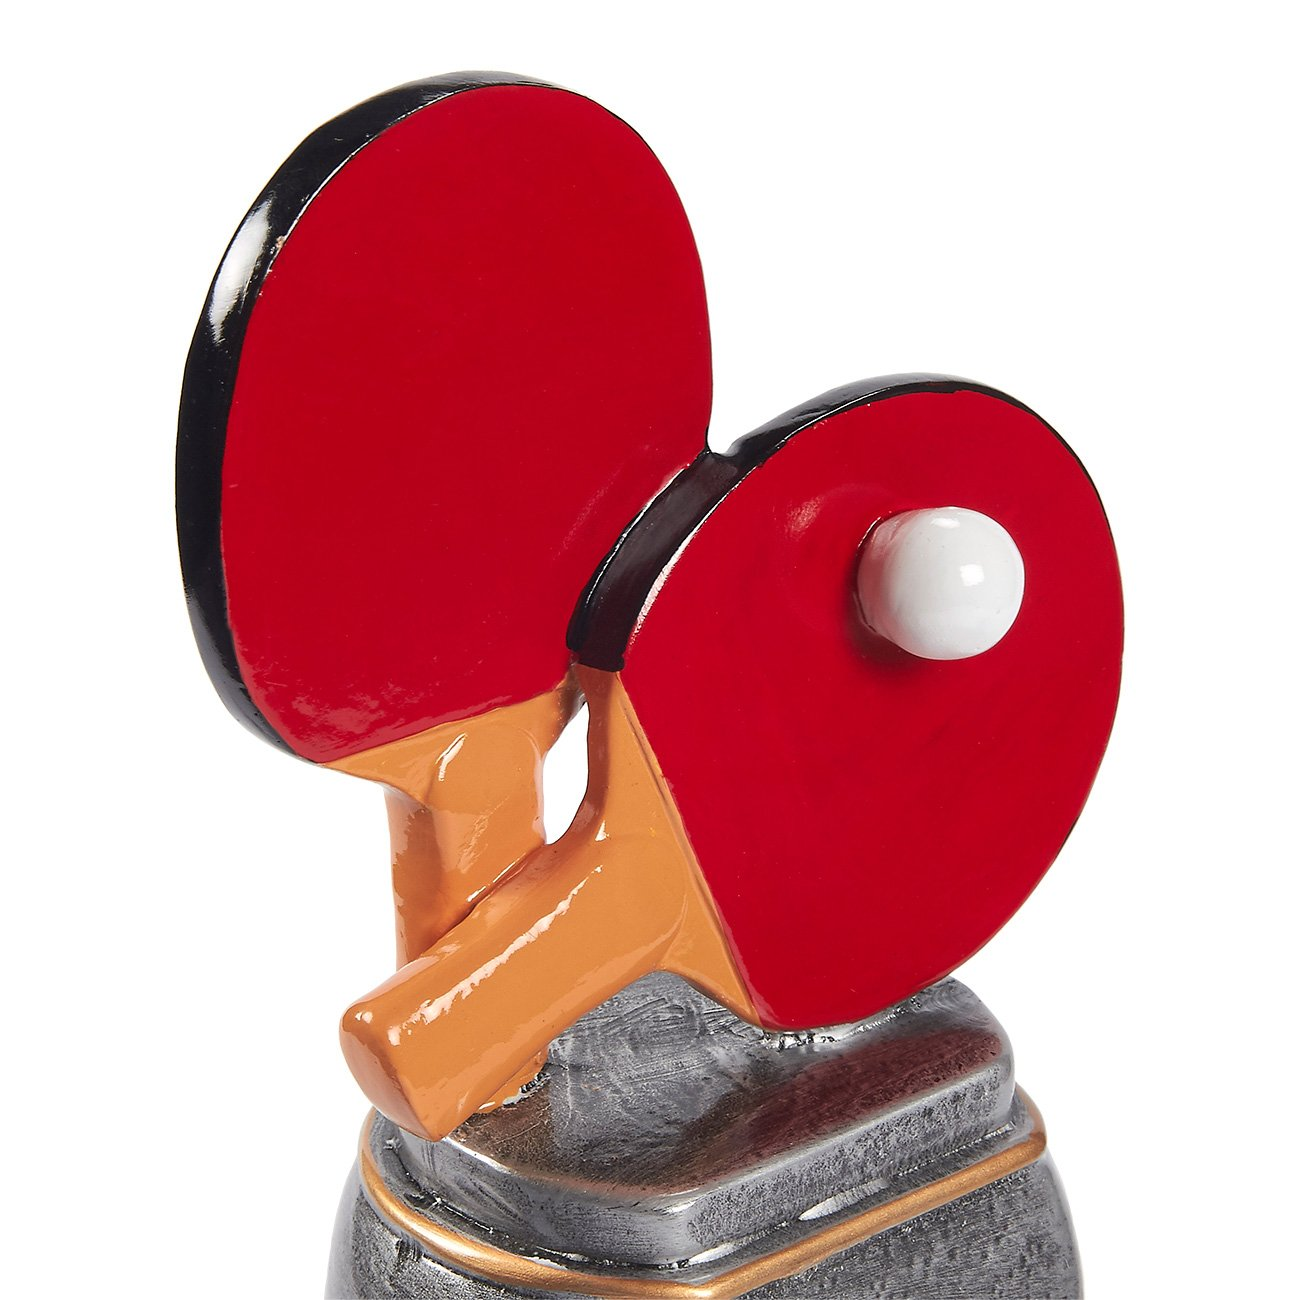 Competitions 5.5 x 4.25 x 3.75 Inches Table Tennis Award Trophy Sports Tournaments Parties Juvale Ping Pong Trophy